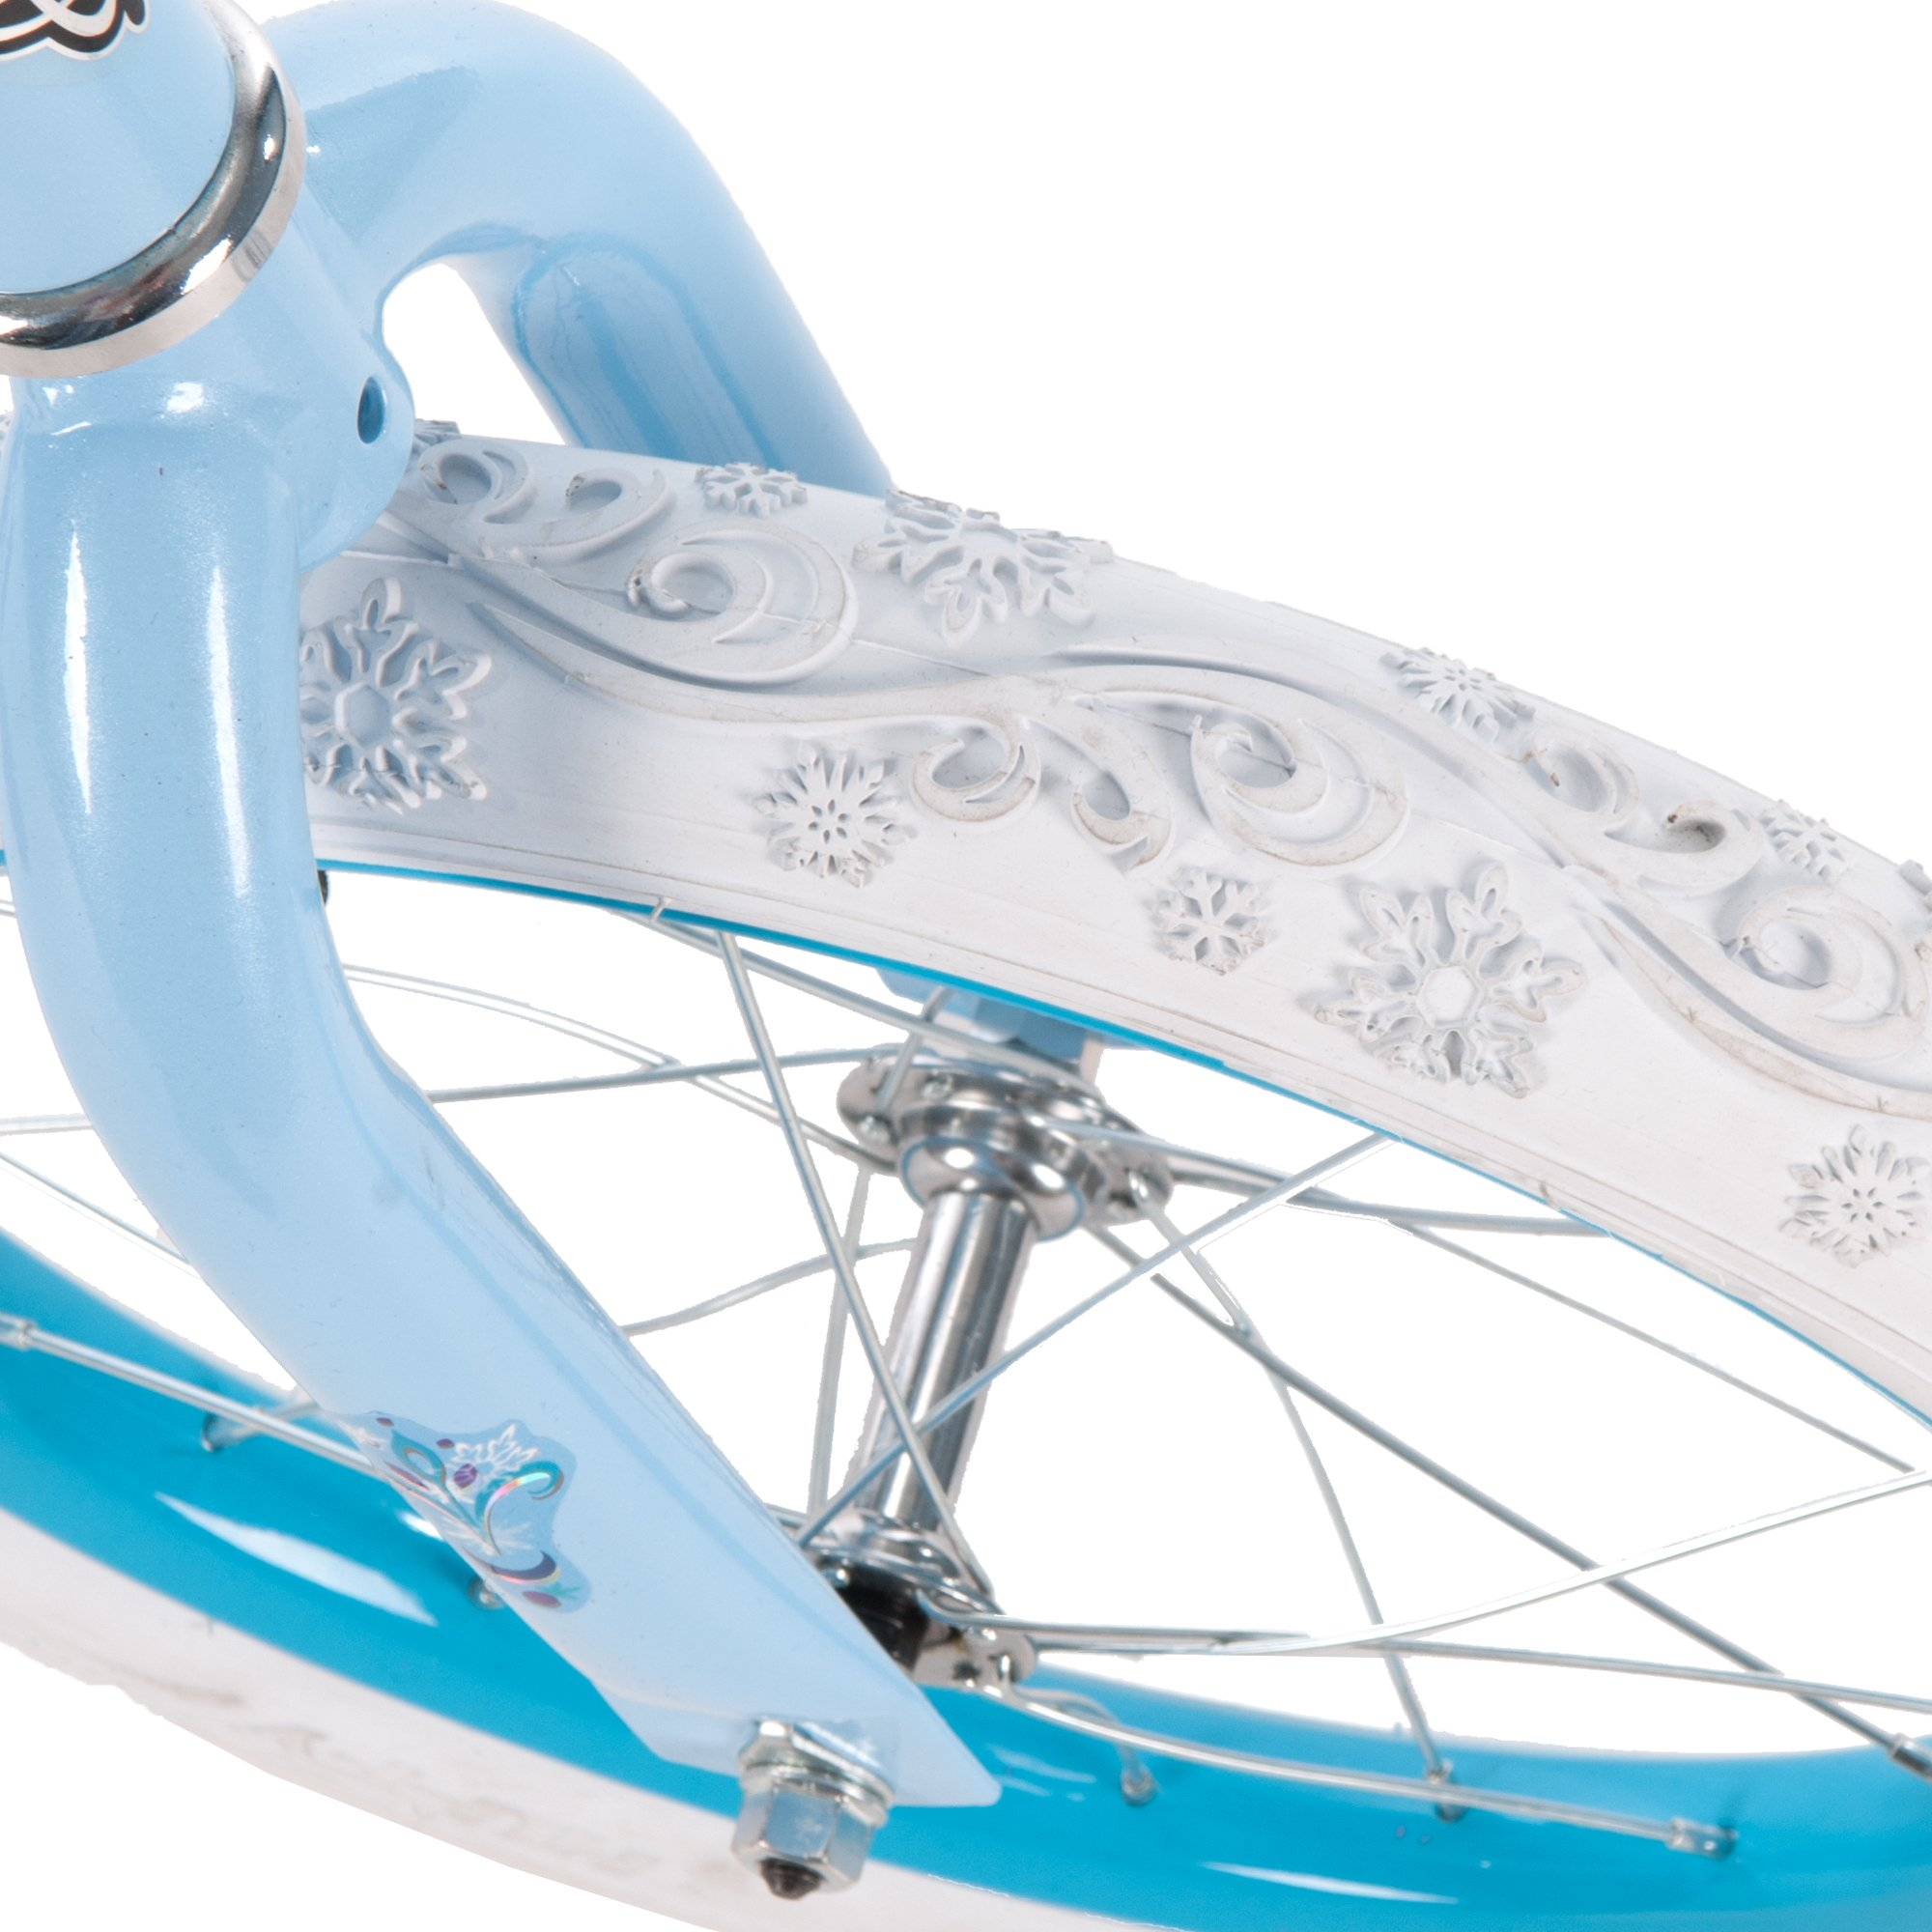 16'' Disney Frozen Bike by Huffy, Ages 4-6, Height 42-48'' by Huffy (Image #7)